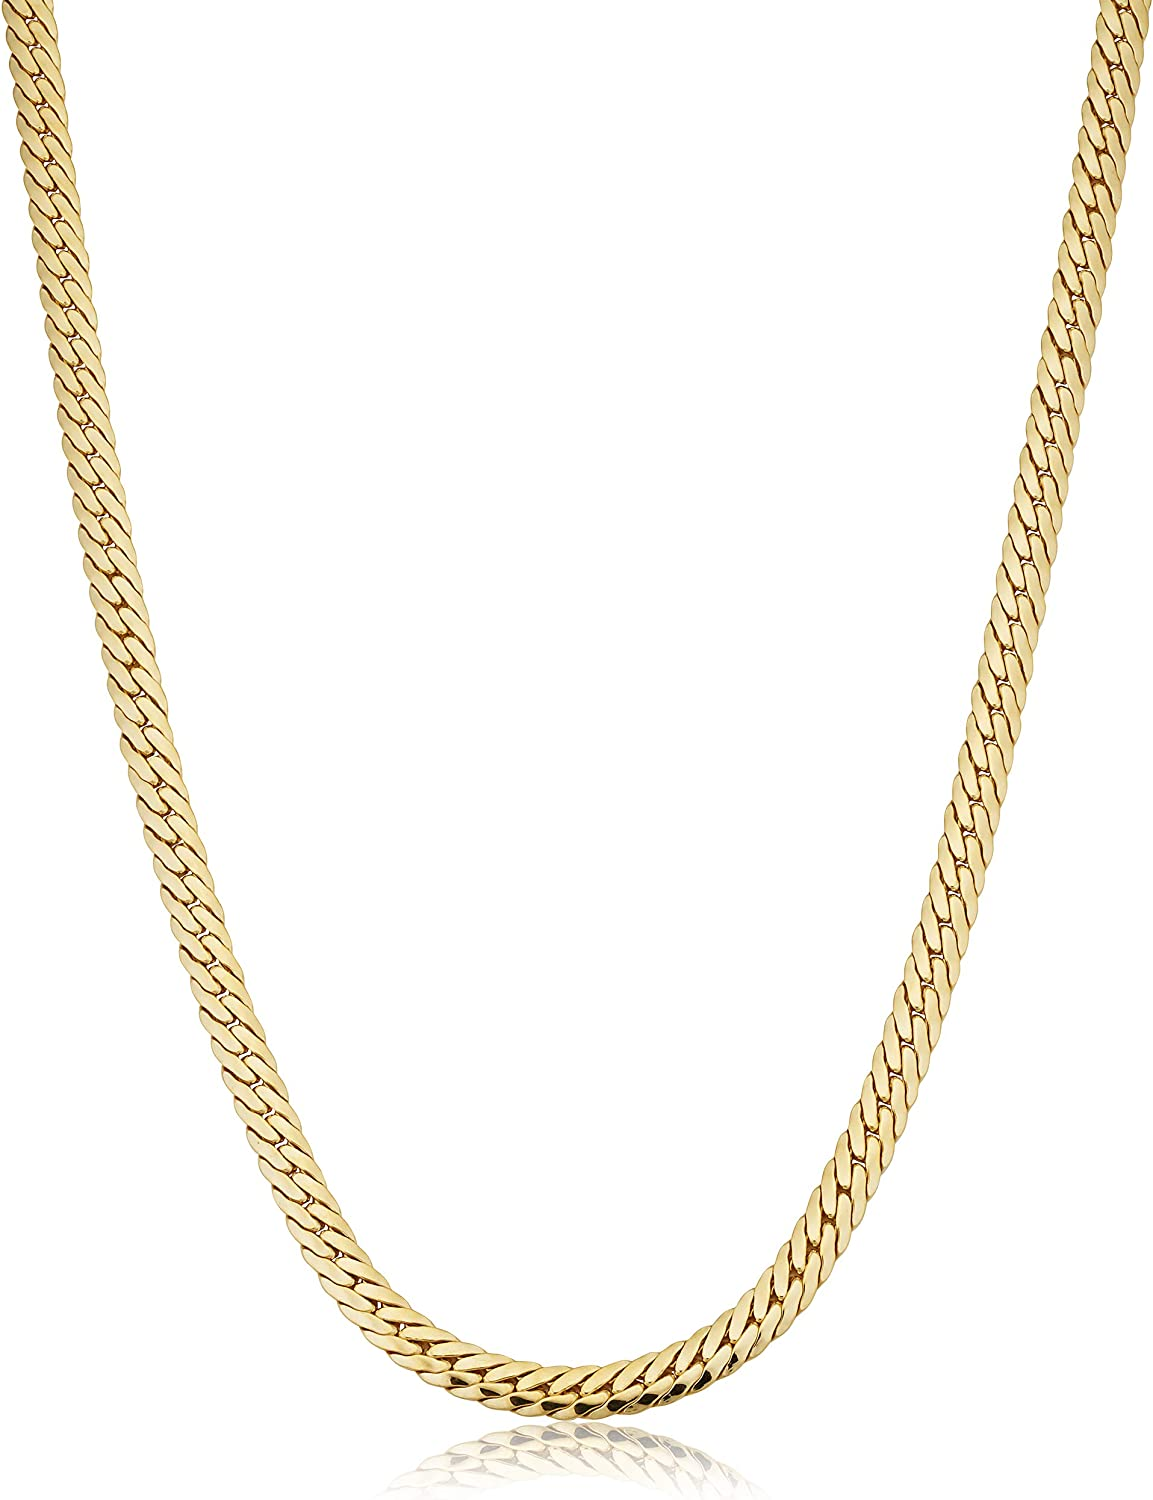 Solid 14k Yellow Gold Filled 4.8 mm Bombay Curb Chain Necklace for Men and Women (16, 18 or 20 inch)